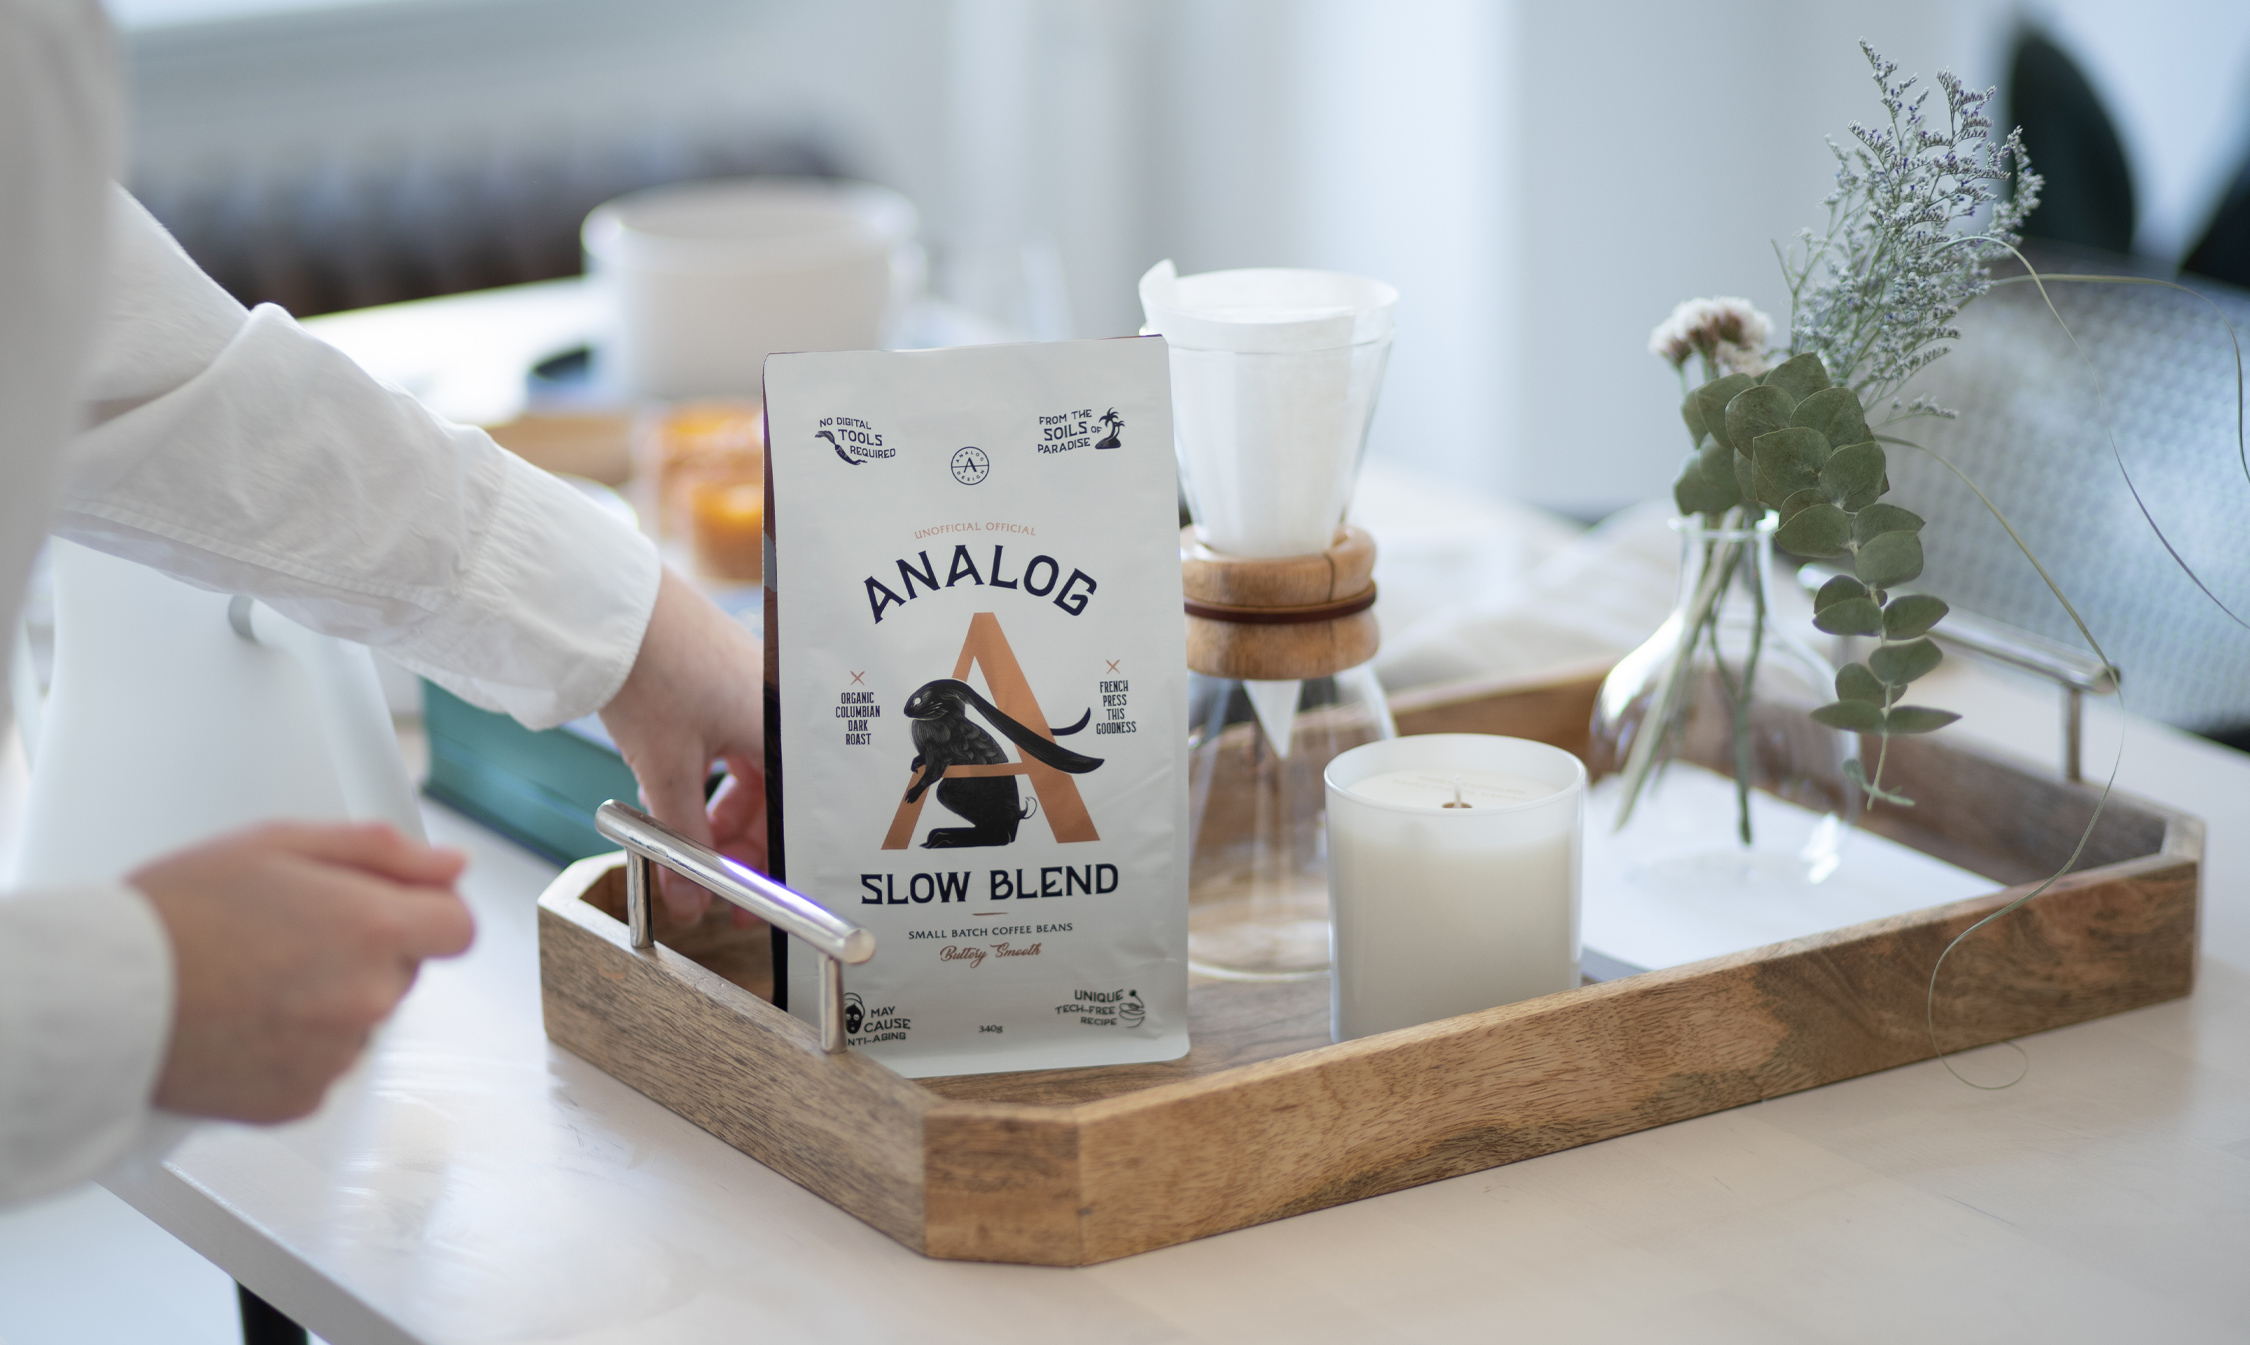 Analog Wins Applied Arts Packaging Design Award For Our Slow Blend Organic Coffee.